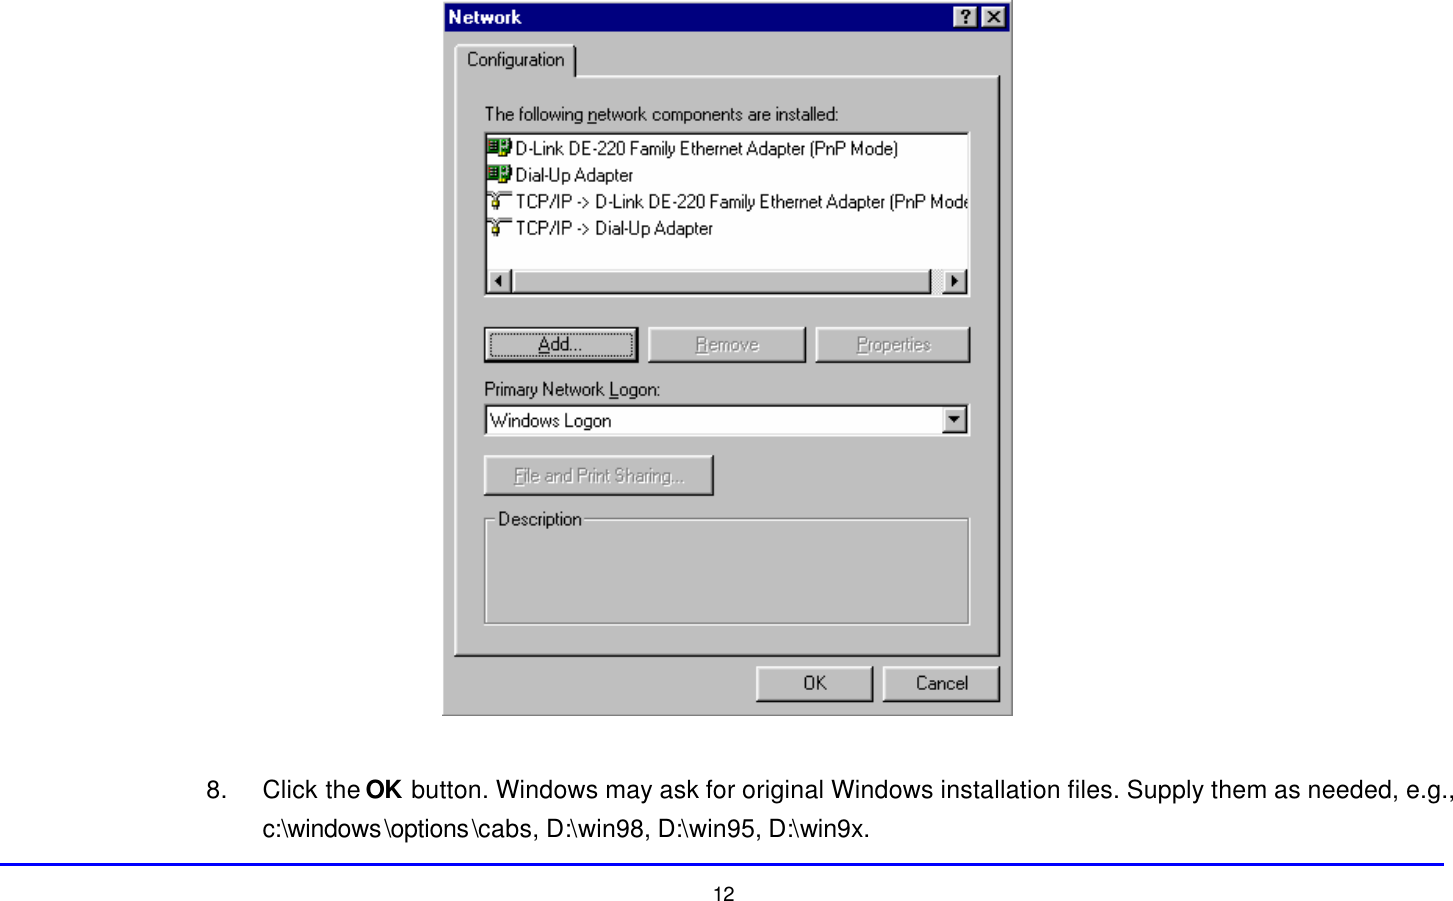 12   8. Click the OK button. Windows may ask for original Windows installation files. Supply them as needed, e.g., c:\windows\options\cabs, D:\win98, D:\win95, D:\win9x.